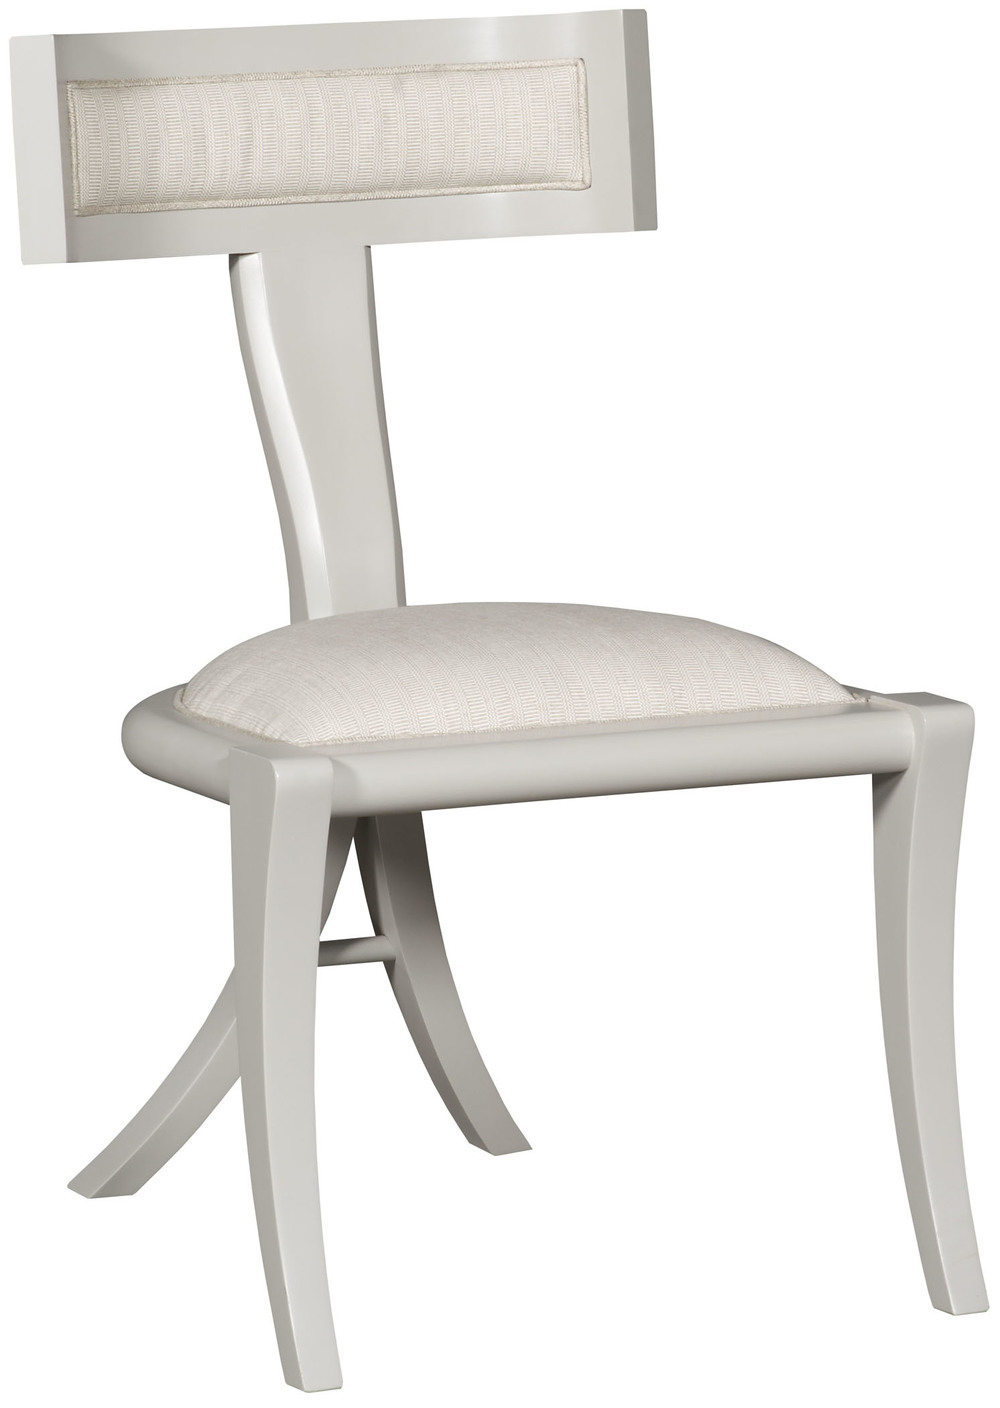 Vanguard Furniture - Greek Peak Side Chair